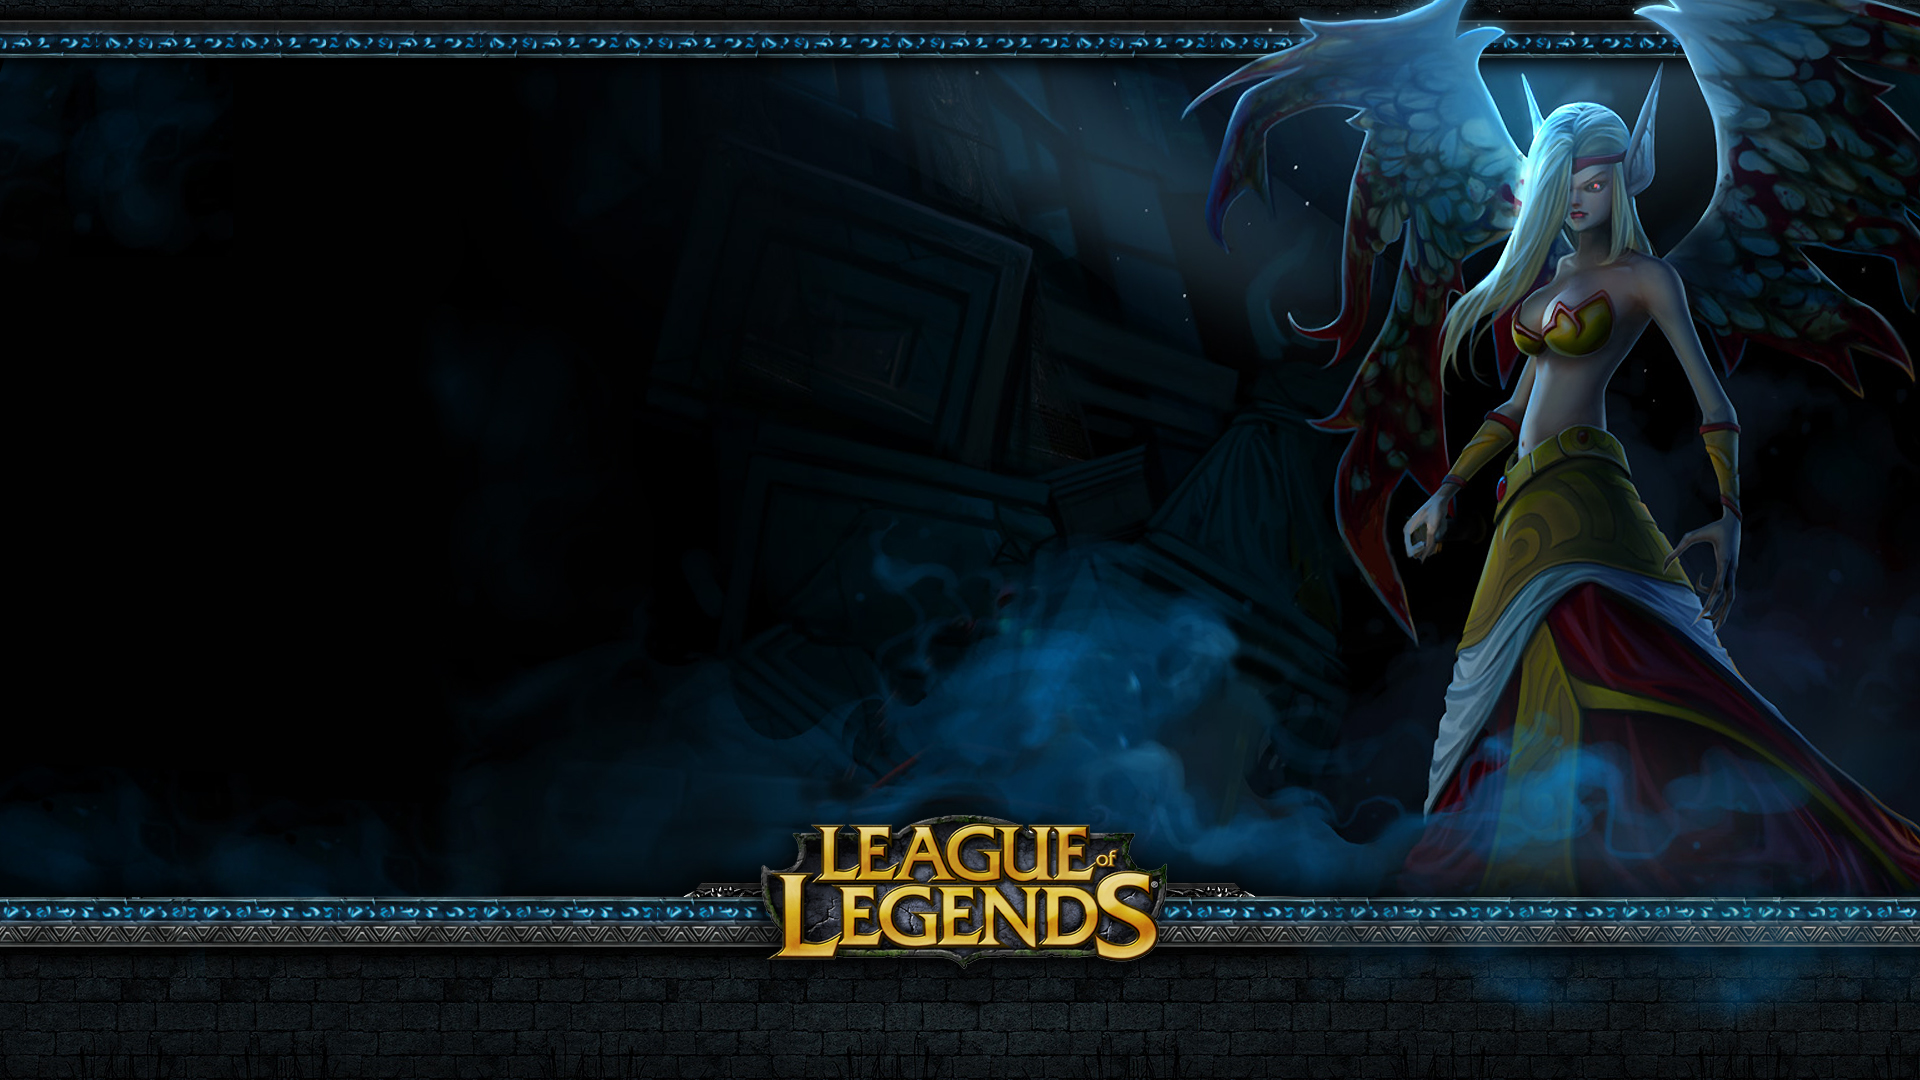 League of Legends wallpaper 76